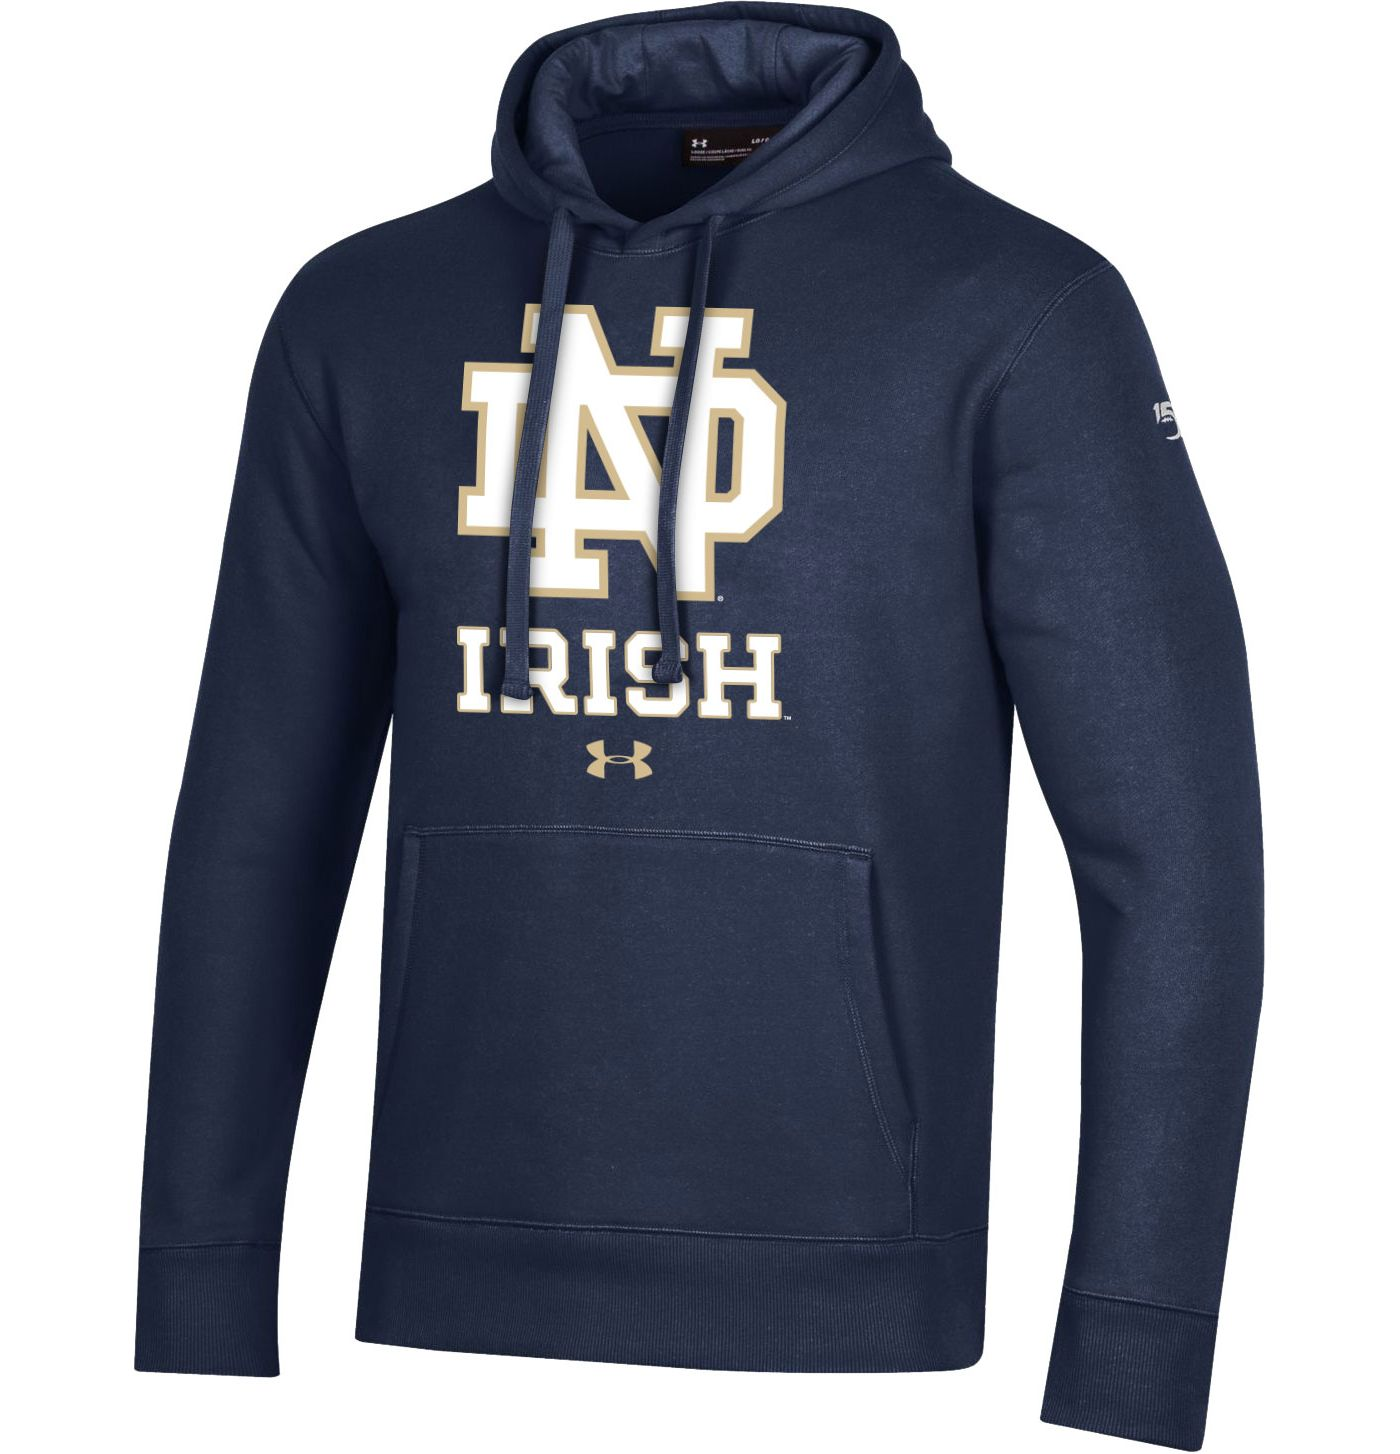 Under Armour Men's Notre Dame Fighting Irish Navy Original Pullover Hoodie